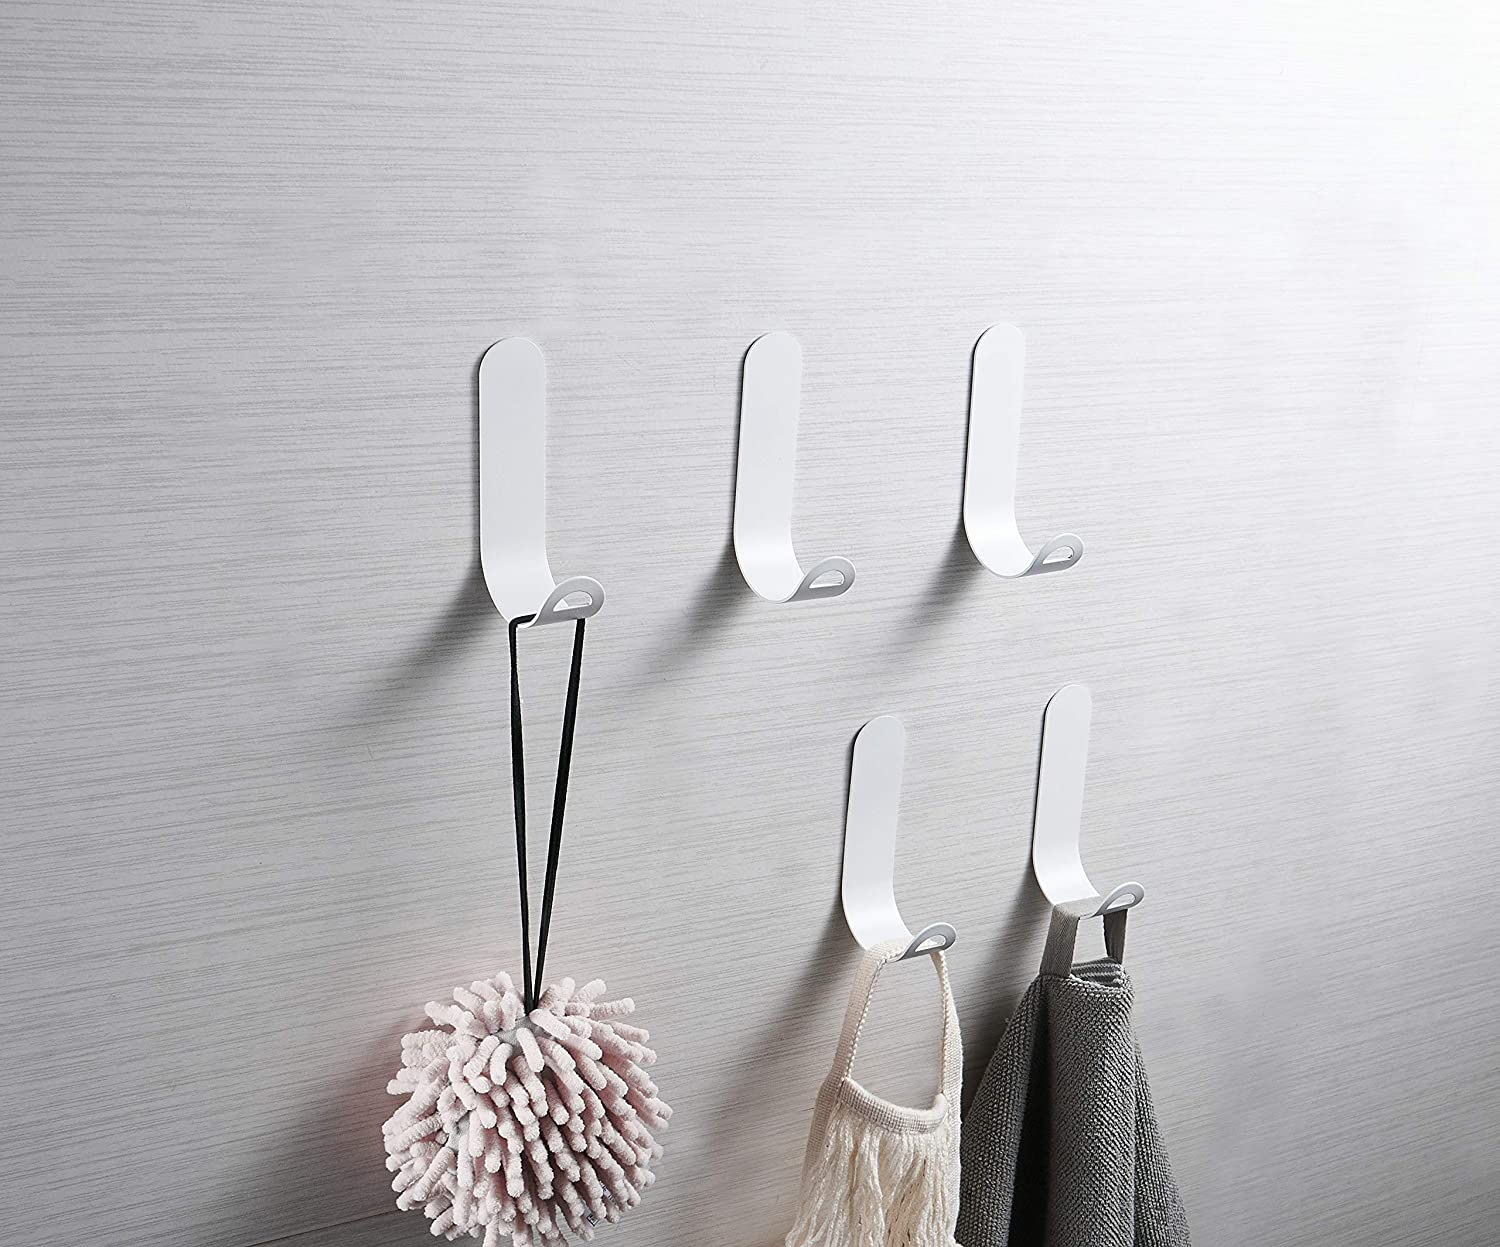 HAWAYI Wall Adhesive Sticky Hooks Matte White Color 5-Pack Steel Wall Hanger Hooks Modern Minimalist for Home/Kitchen/Office/Bathroom